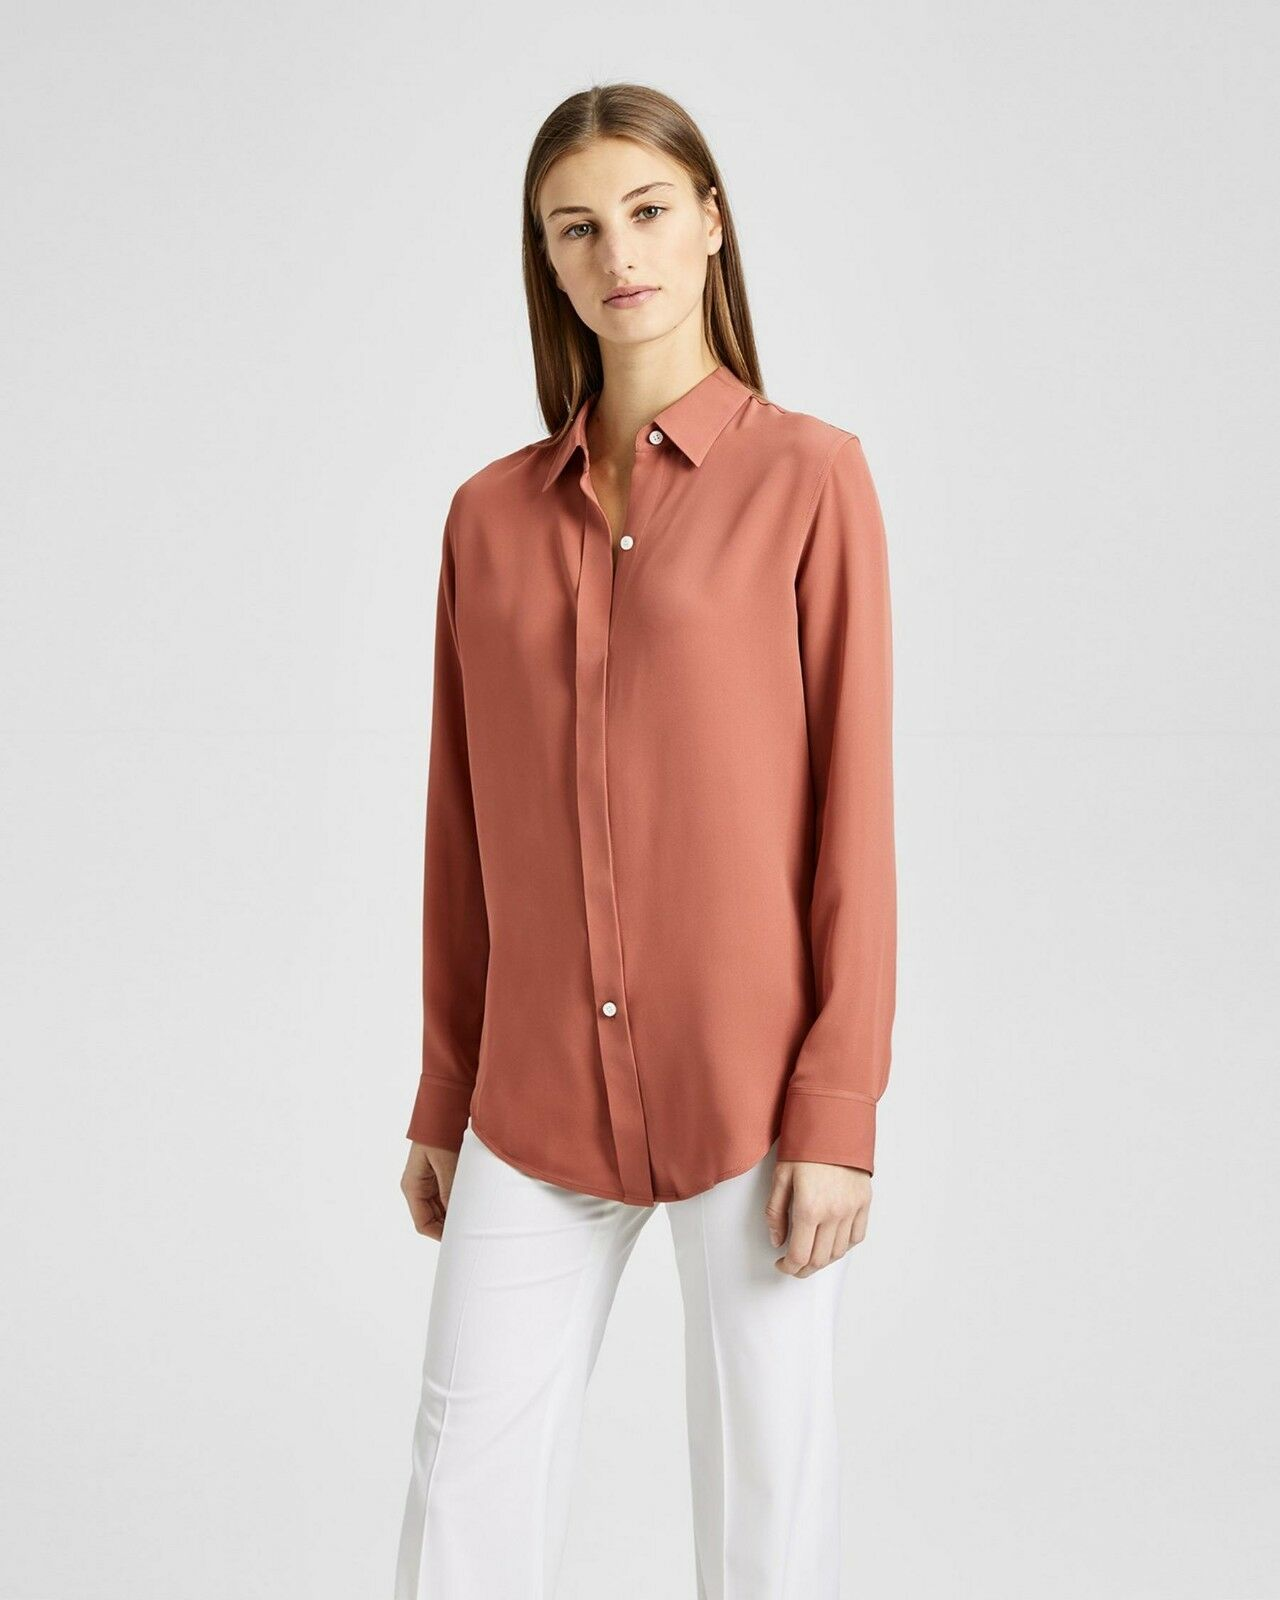 NWT Theory Essential Button Down Silk Shirt Blouse Rosa Russet Sz P(XS),S